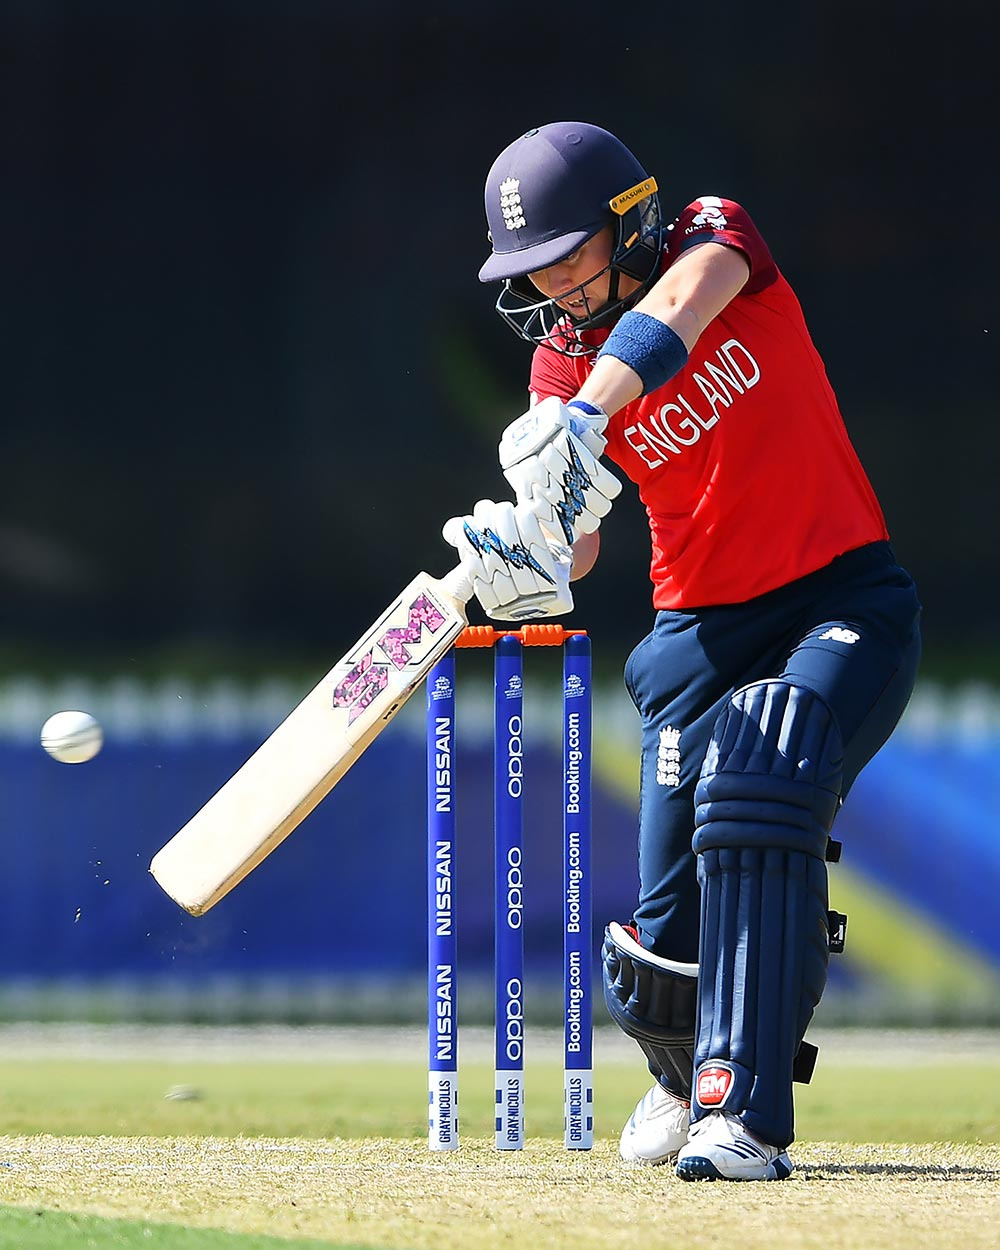 Heather Knight's 45 runs came in 36 ball // ICC/Getty